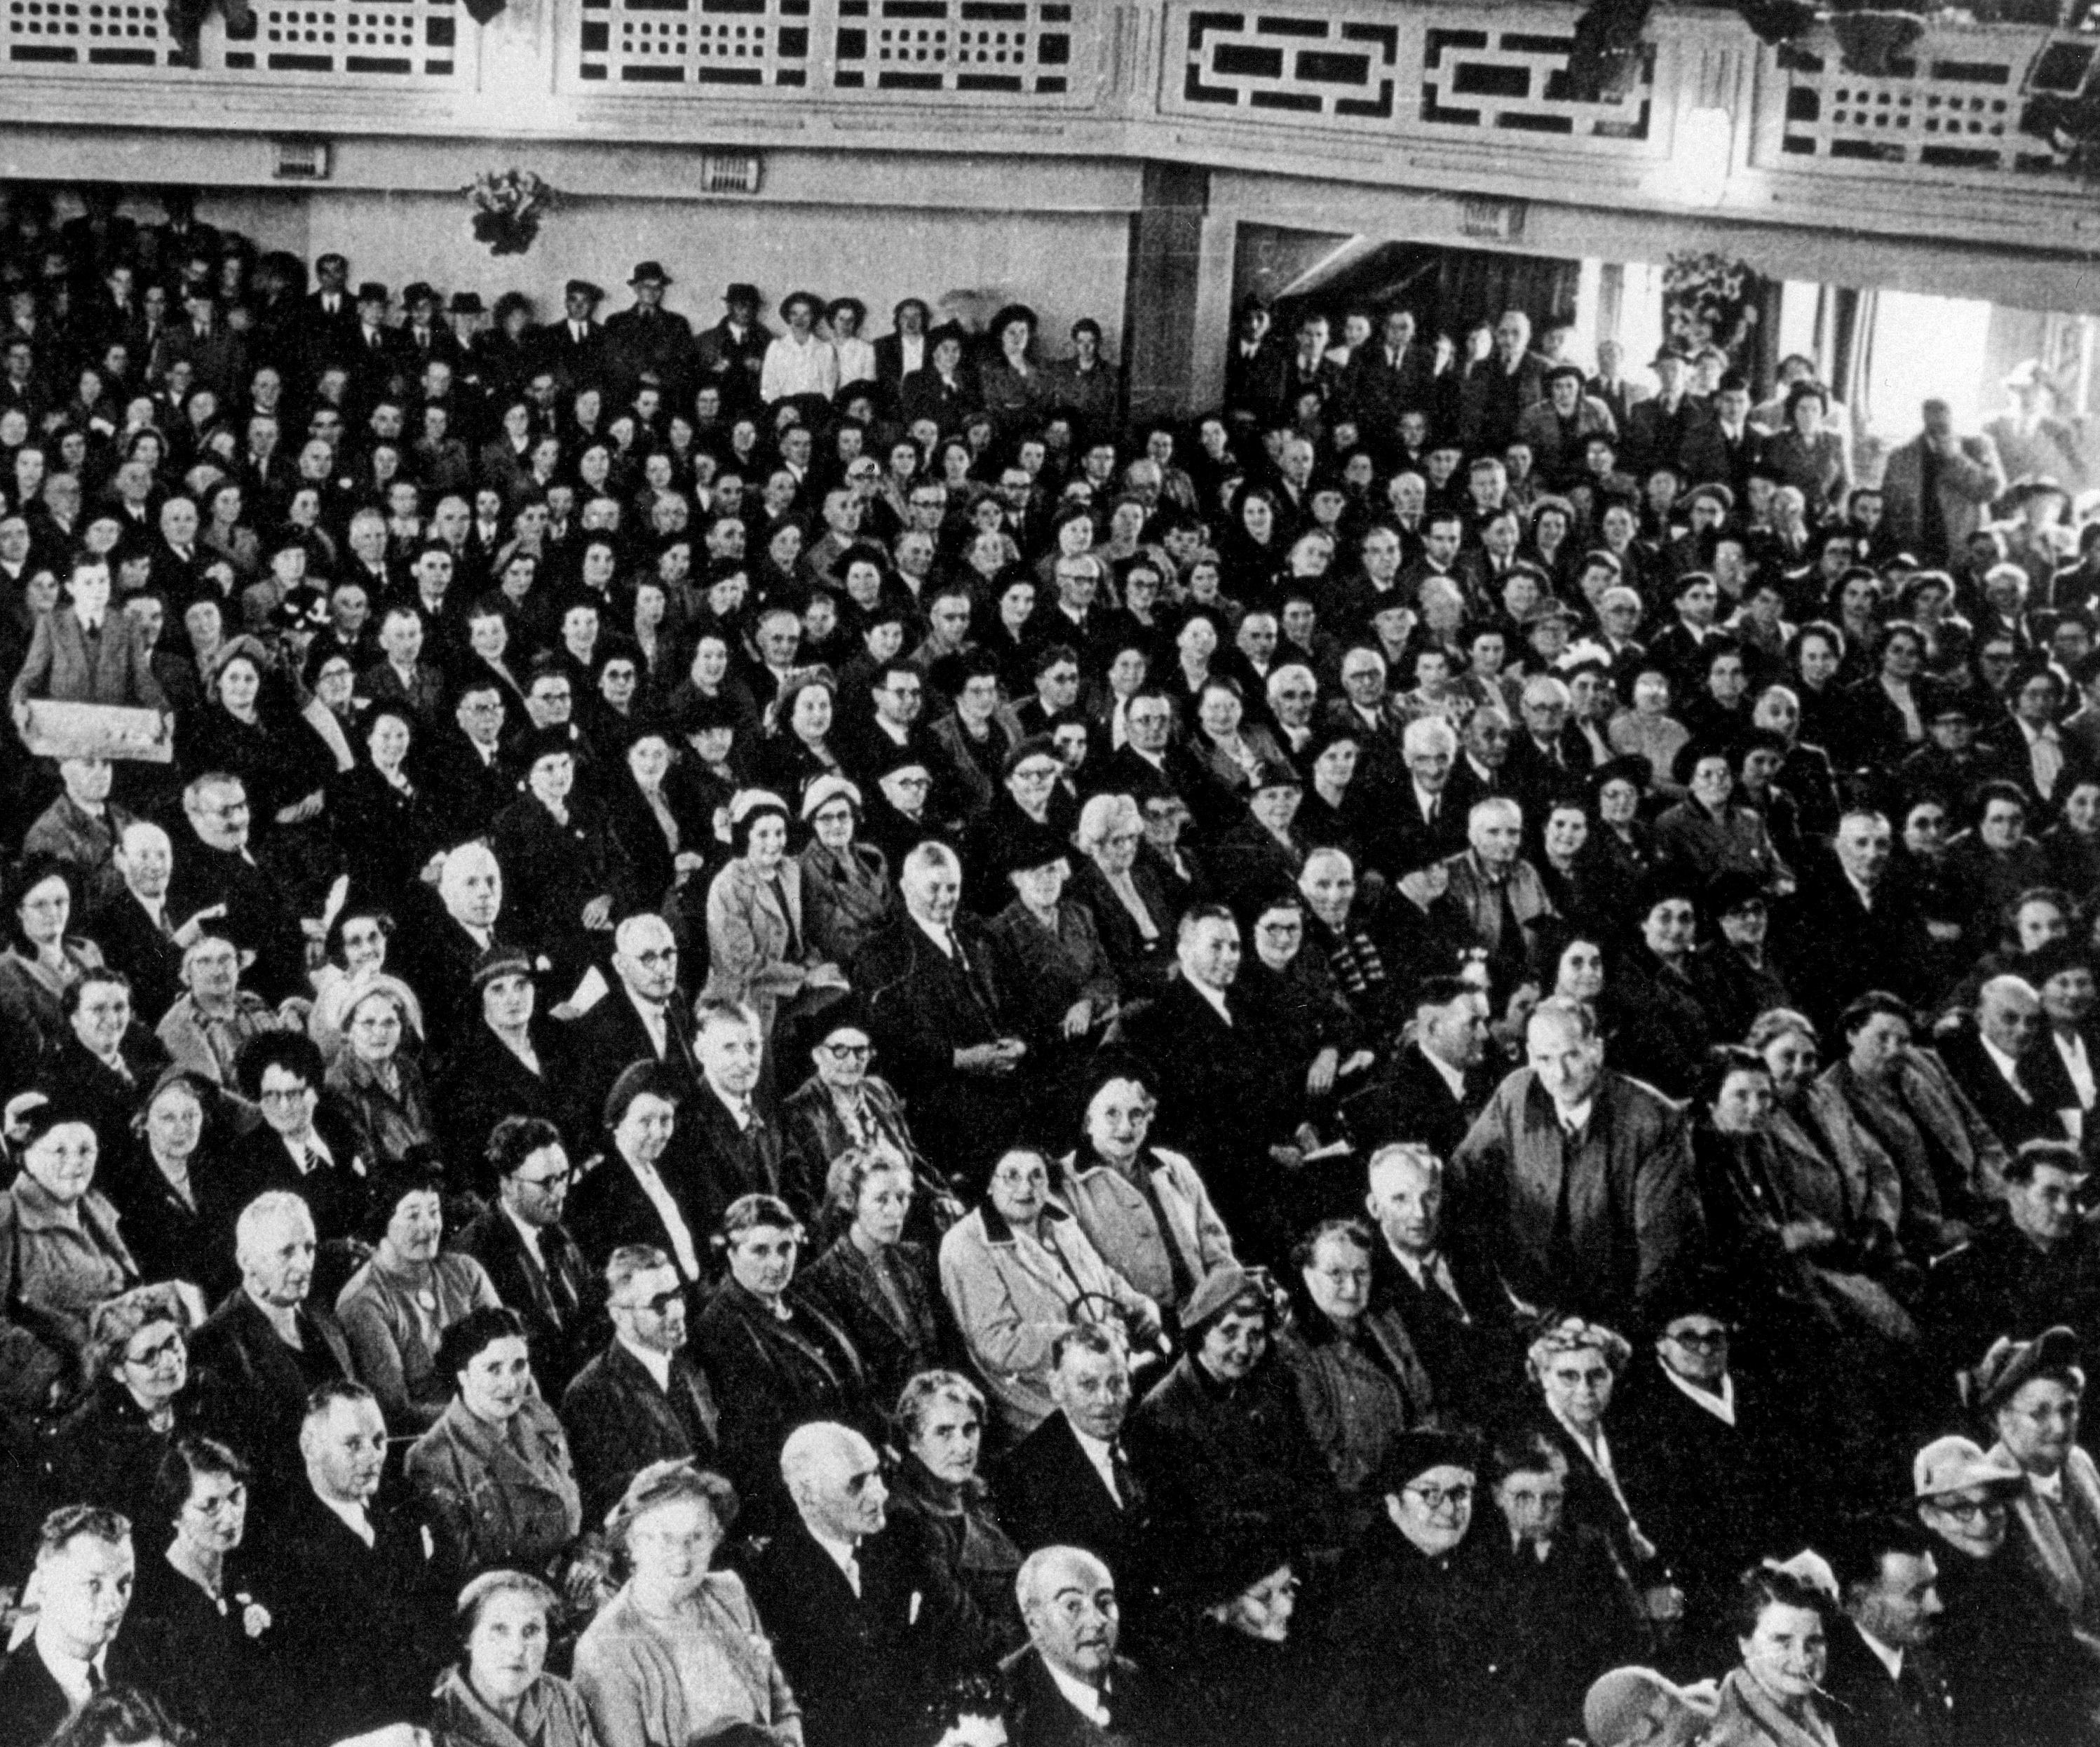 Porthcawl Pavilion audience 1957